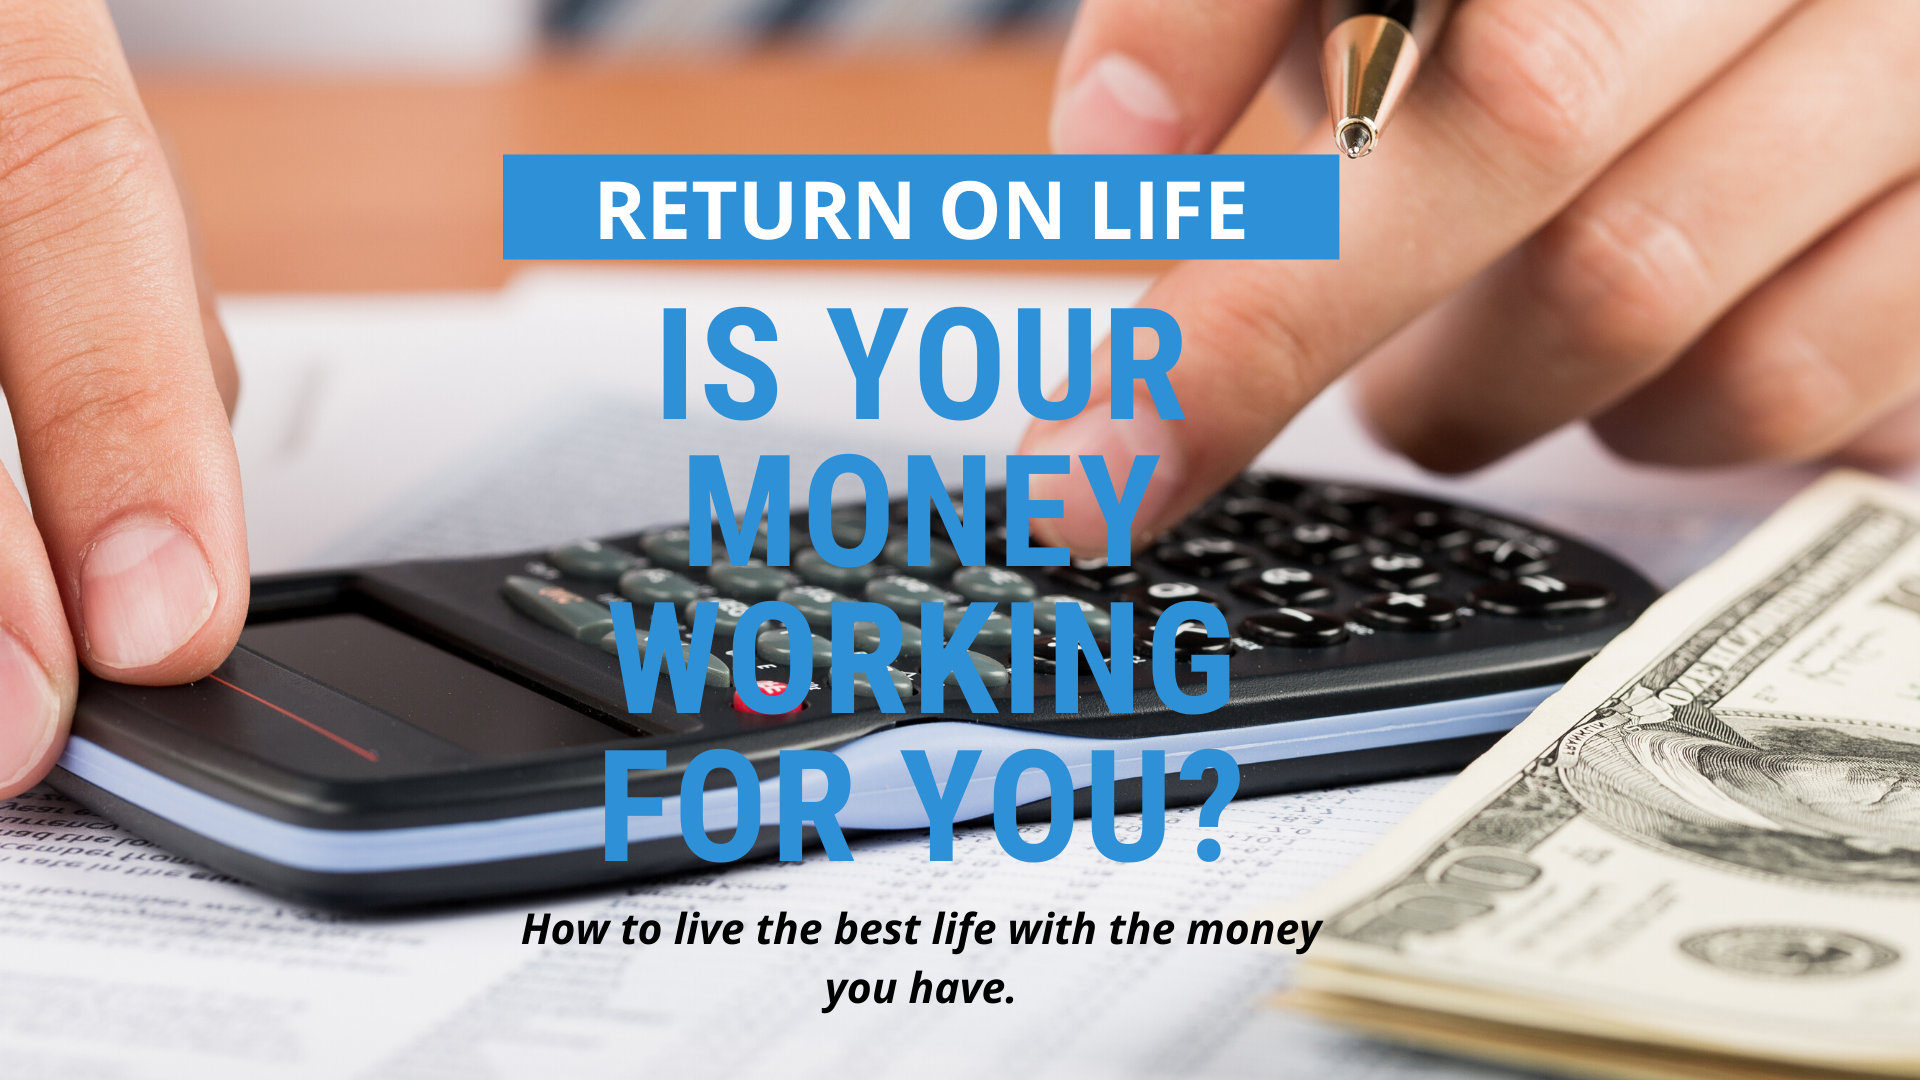 Is Your Money Being Used to Improve Your Life?